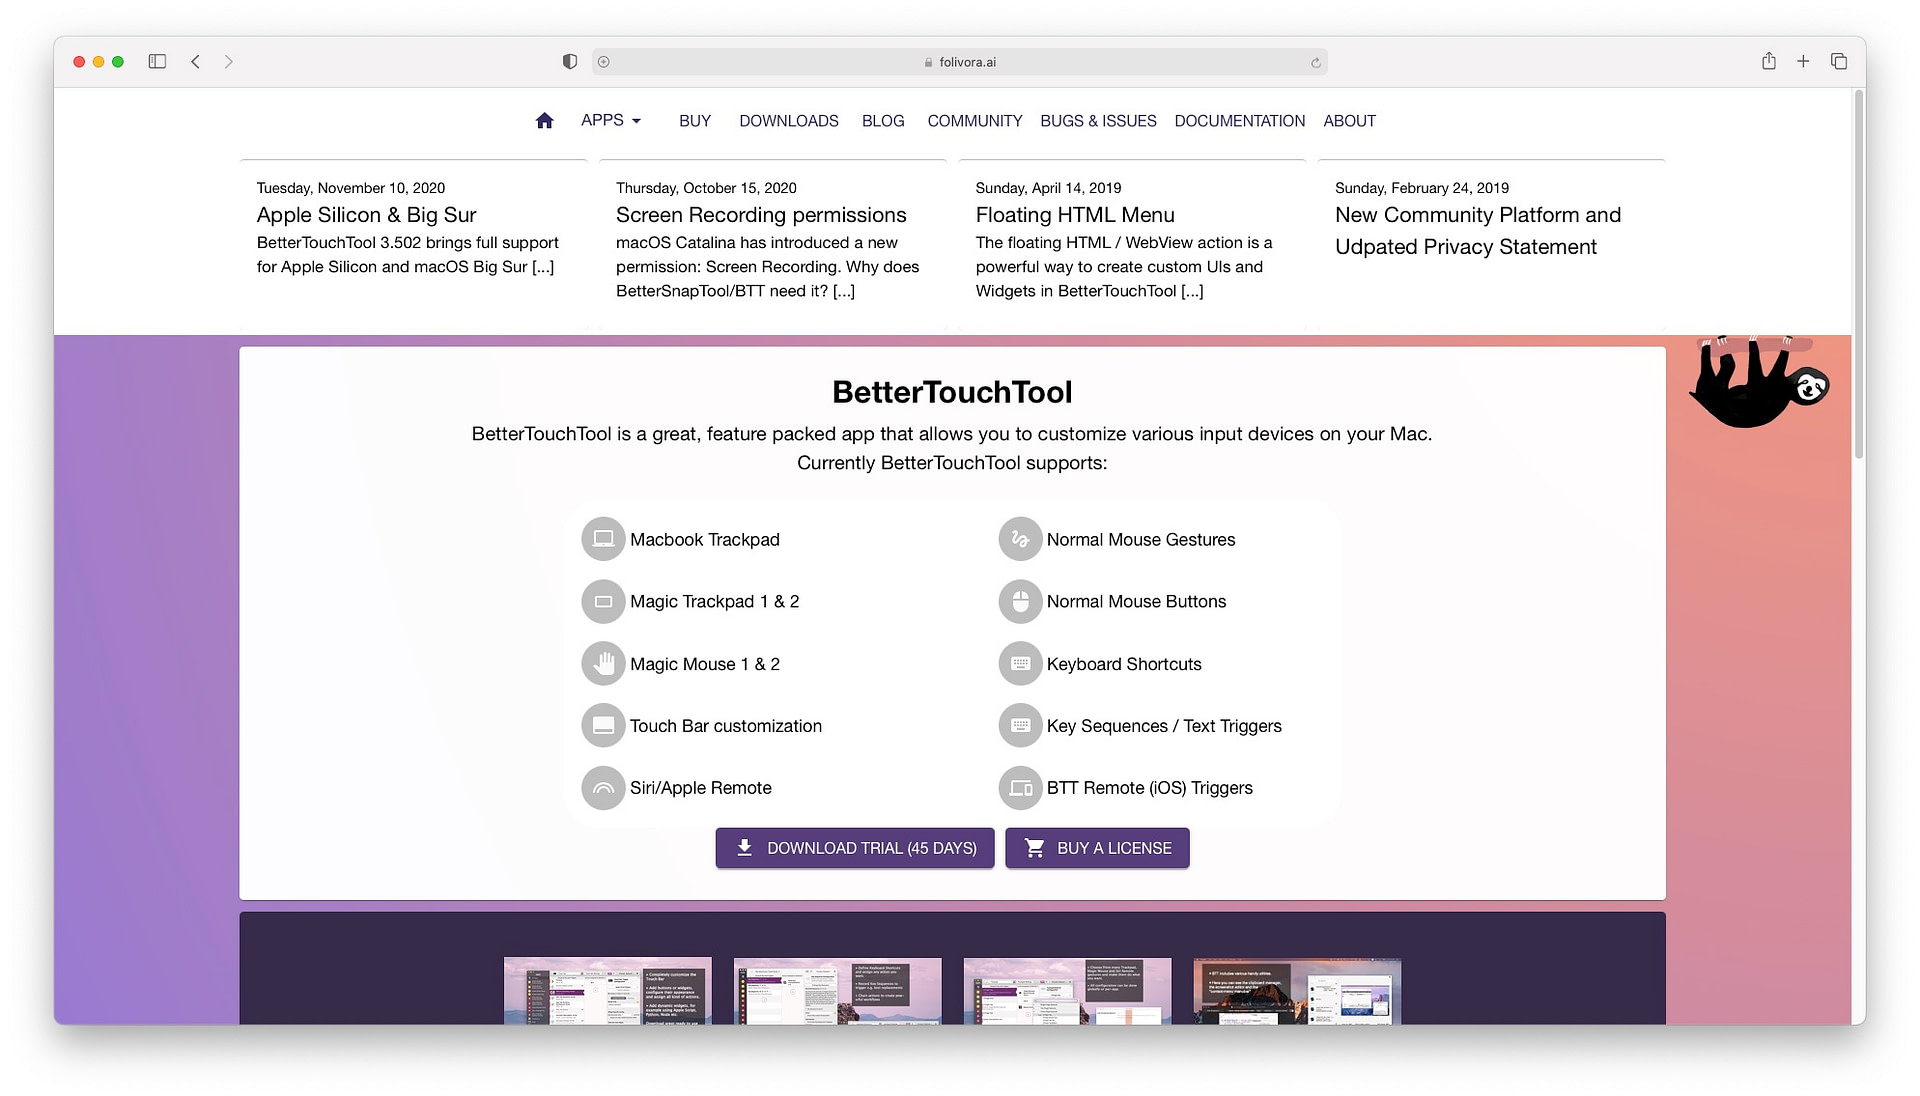 Best productivity apps for Mac: BetterTouchTool